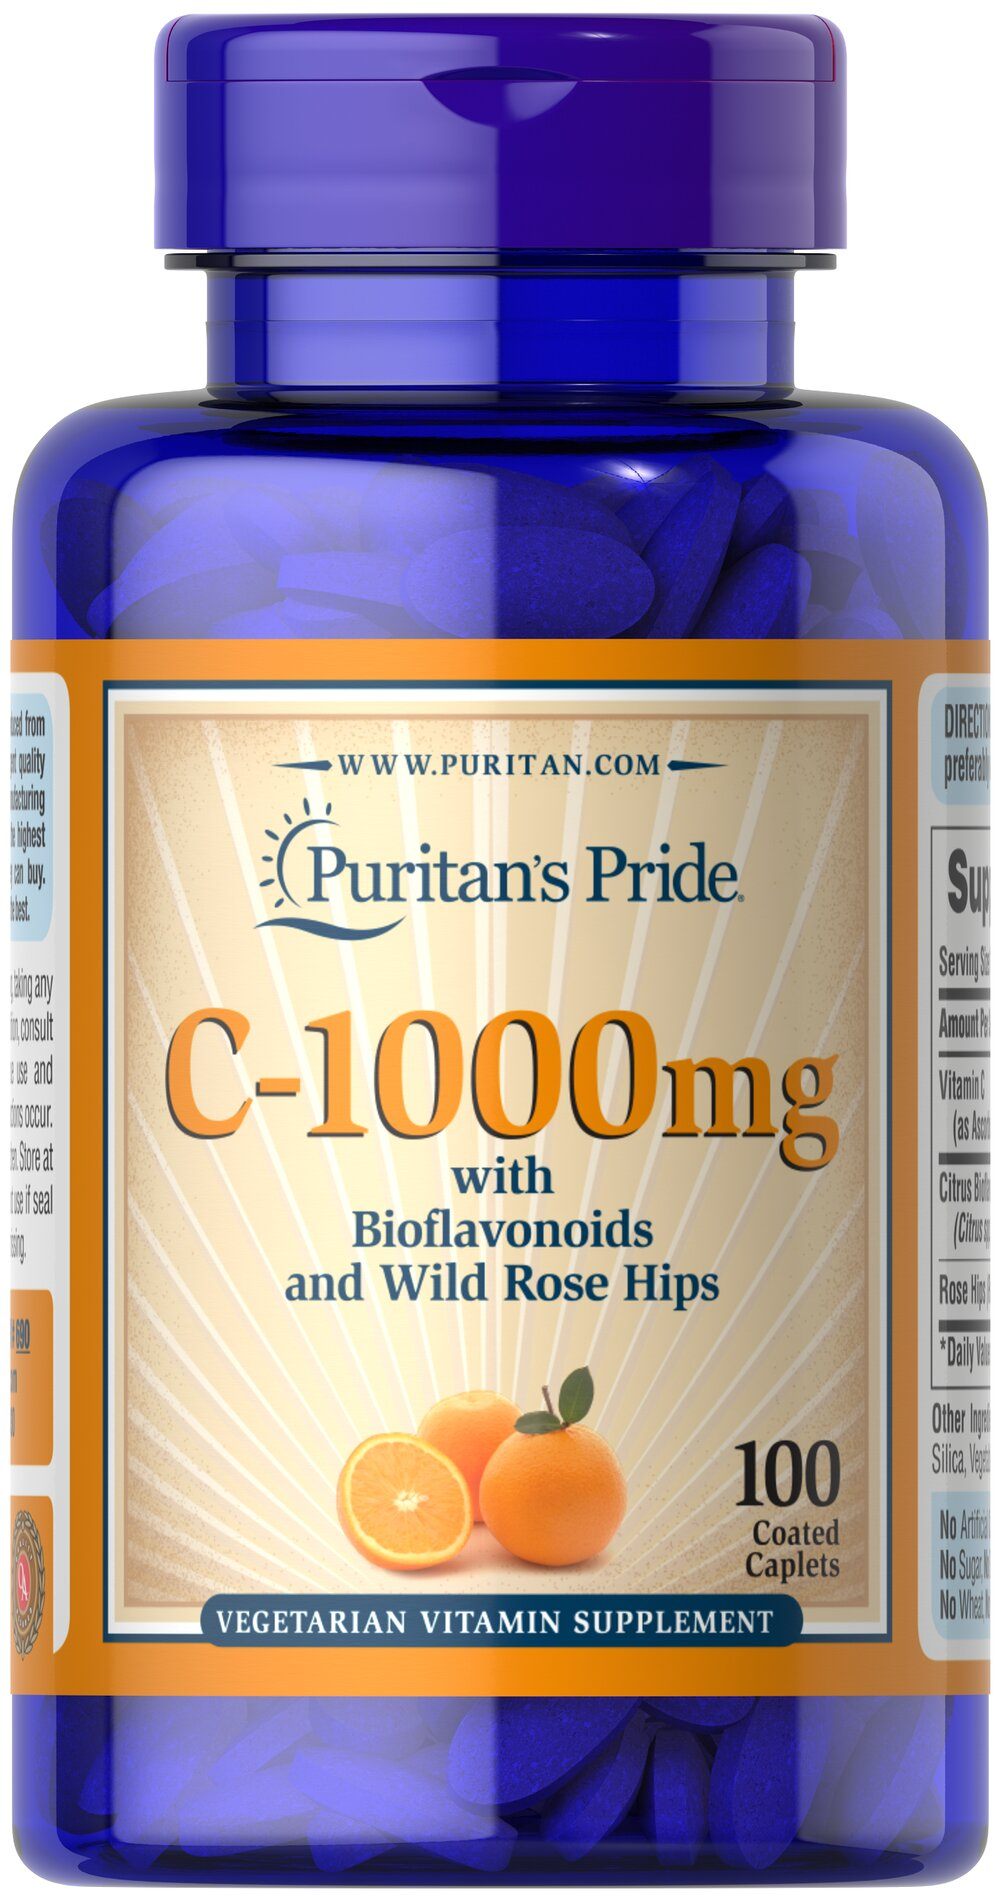 Vitamin C-1000 mg with Bioflavonoids & Rose Hips  100 Caplets 1000 mg $10.79